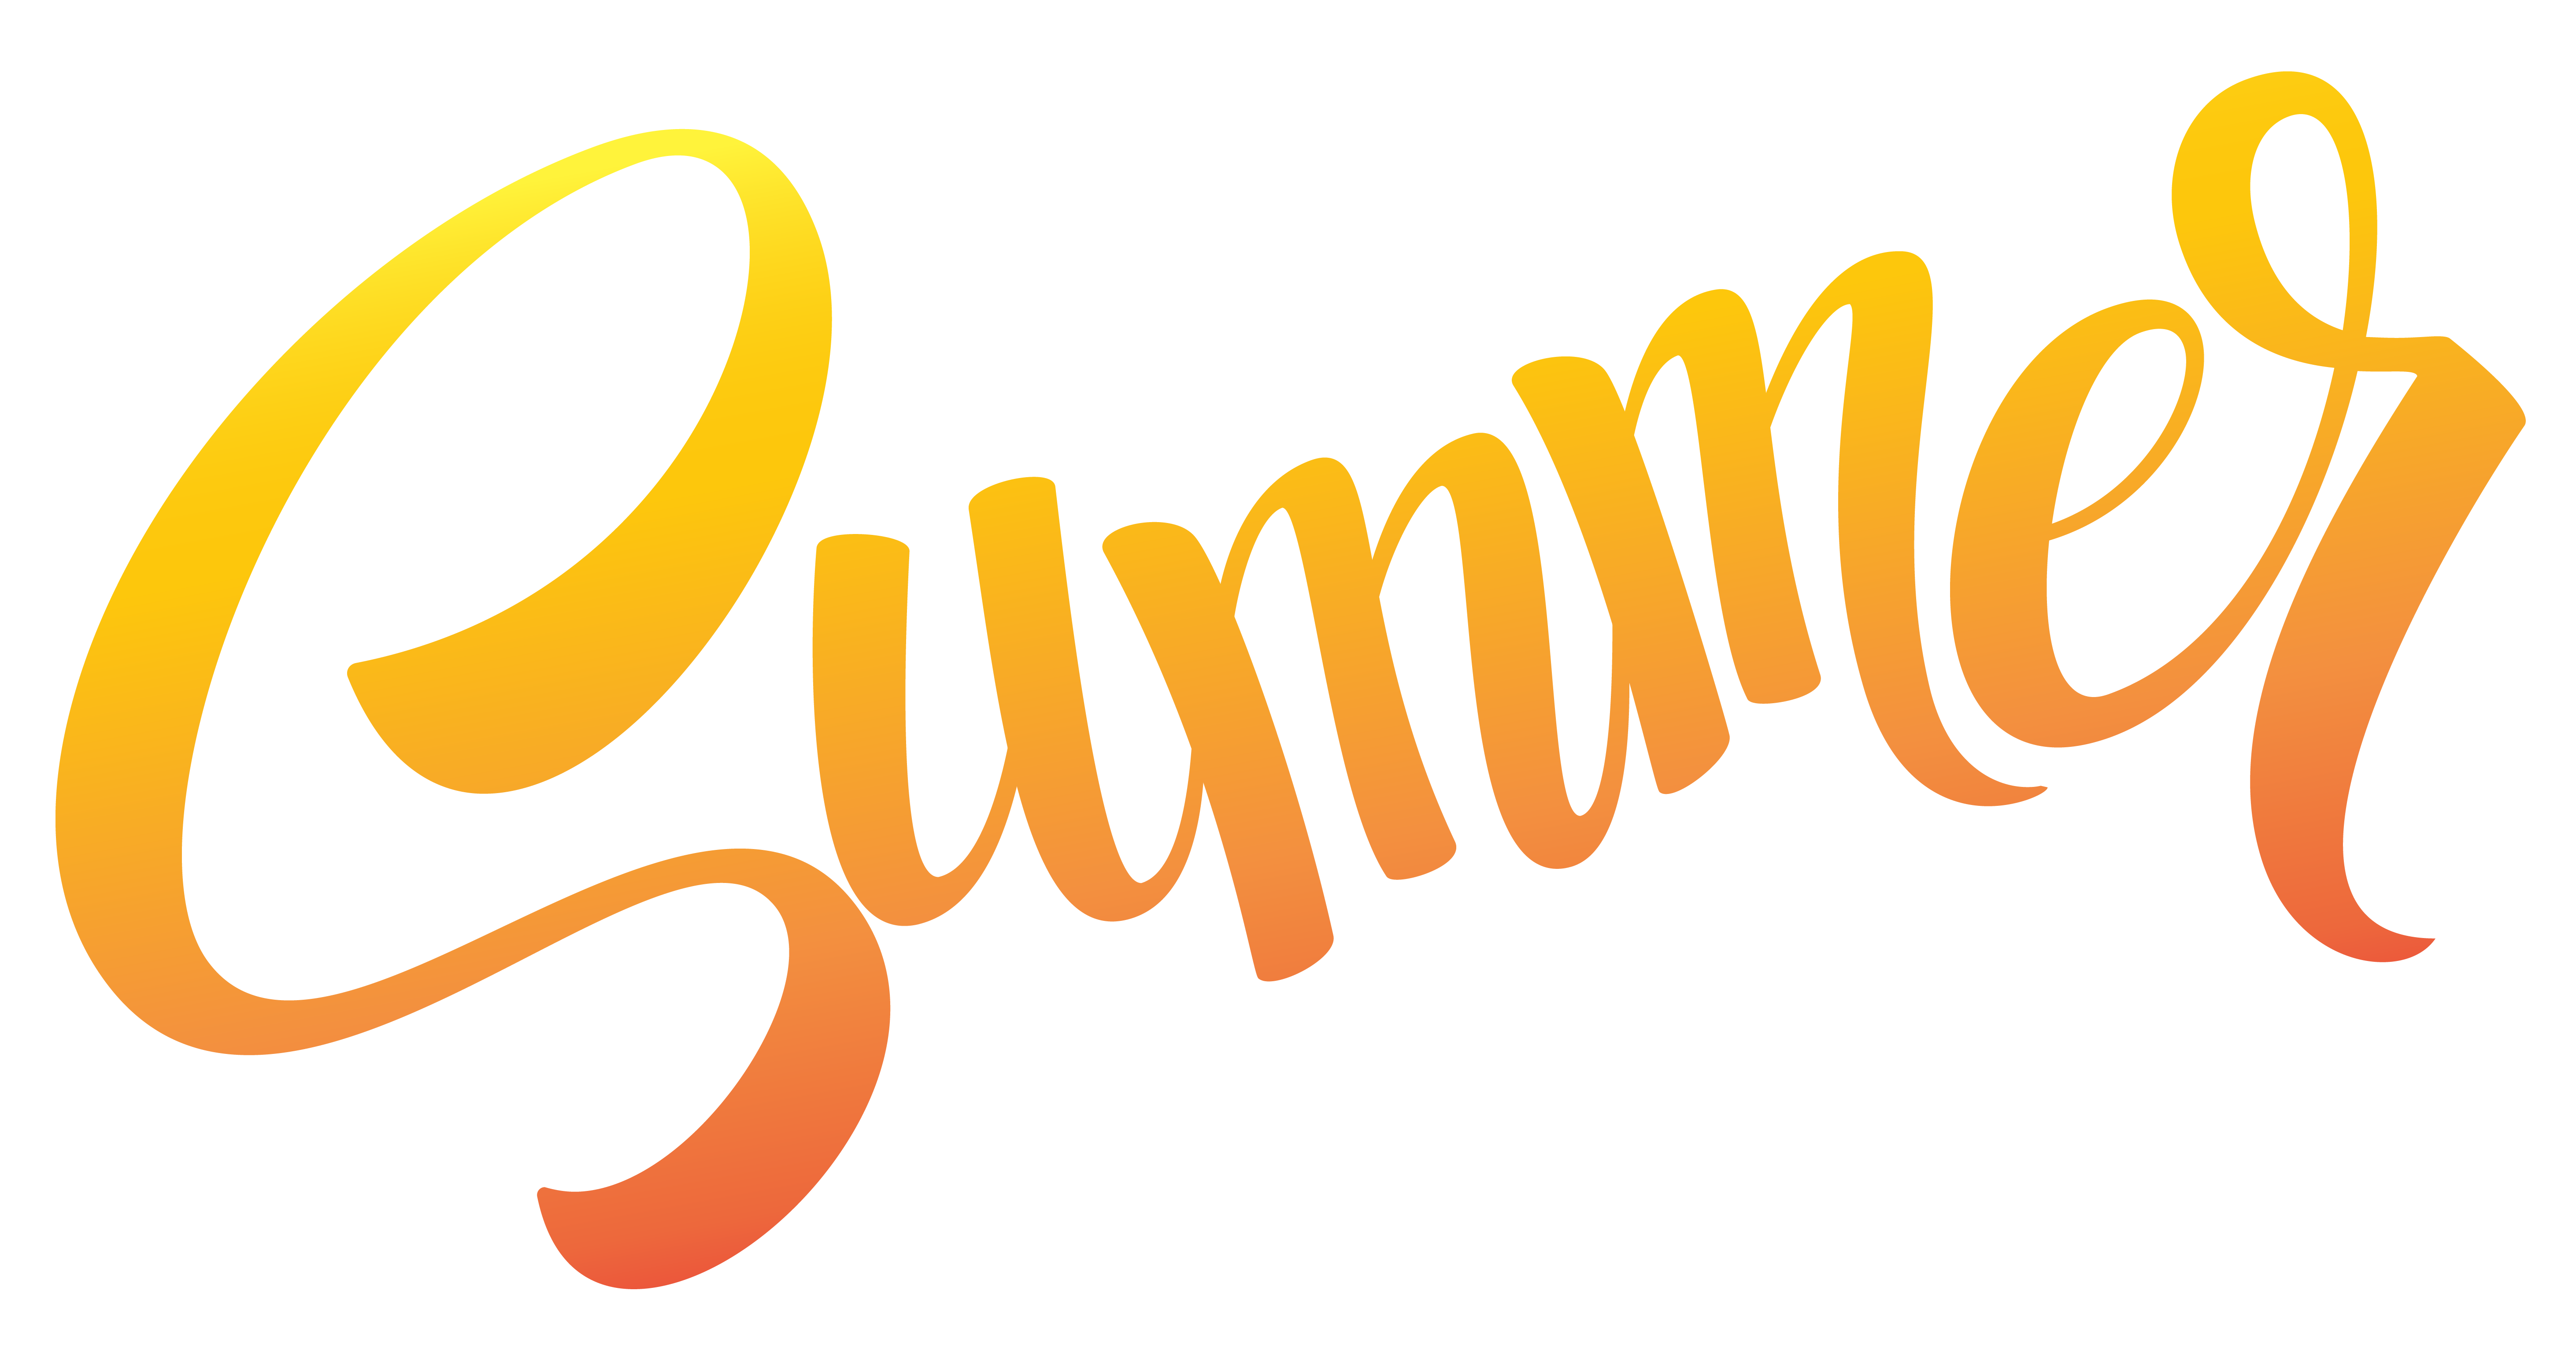 Free text png. Sumer image gallery yopriceville